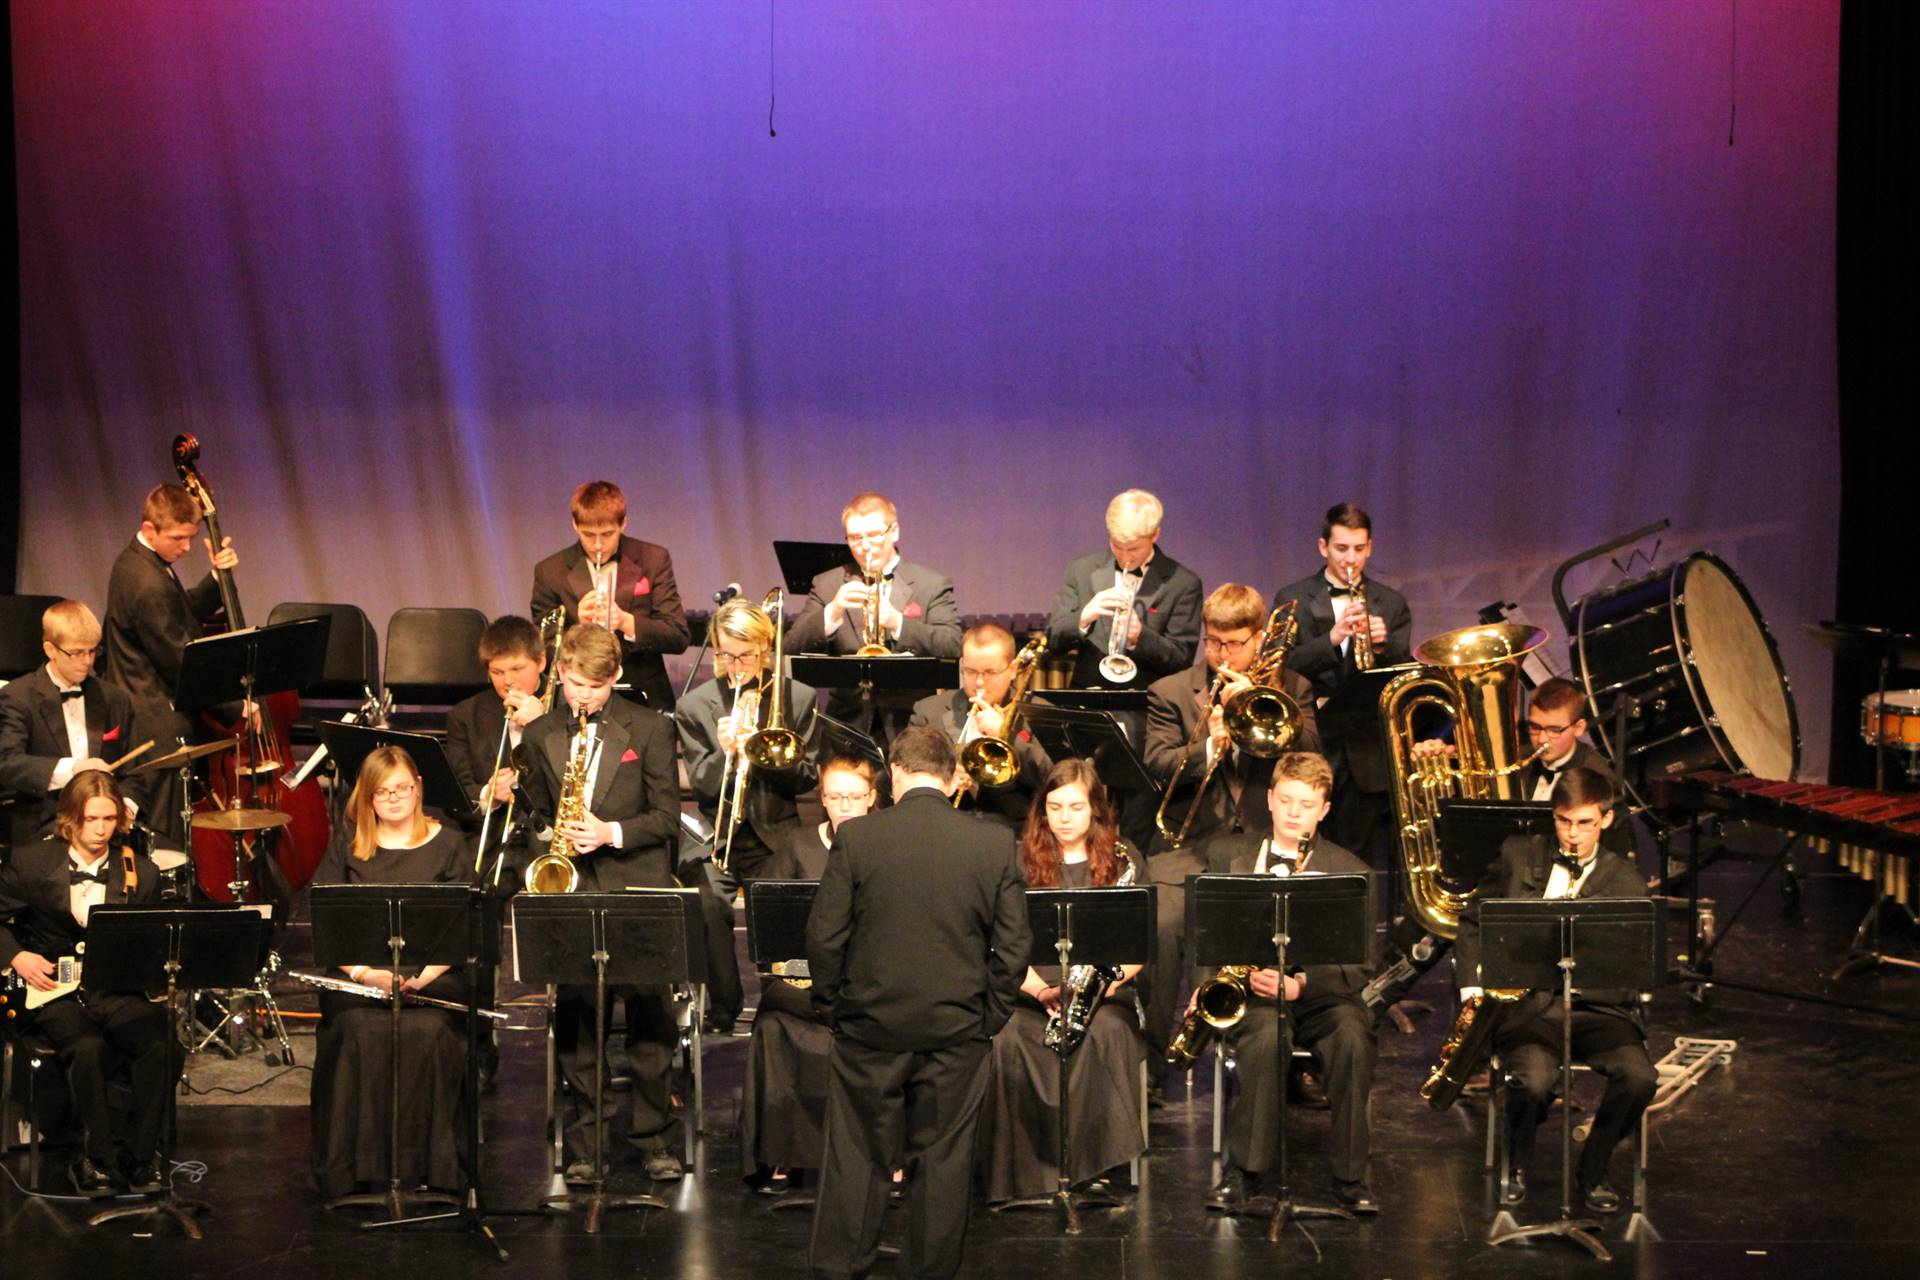 High school jazz band on stage